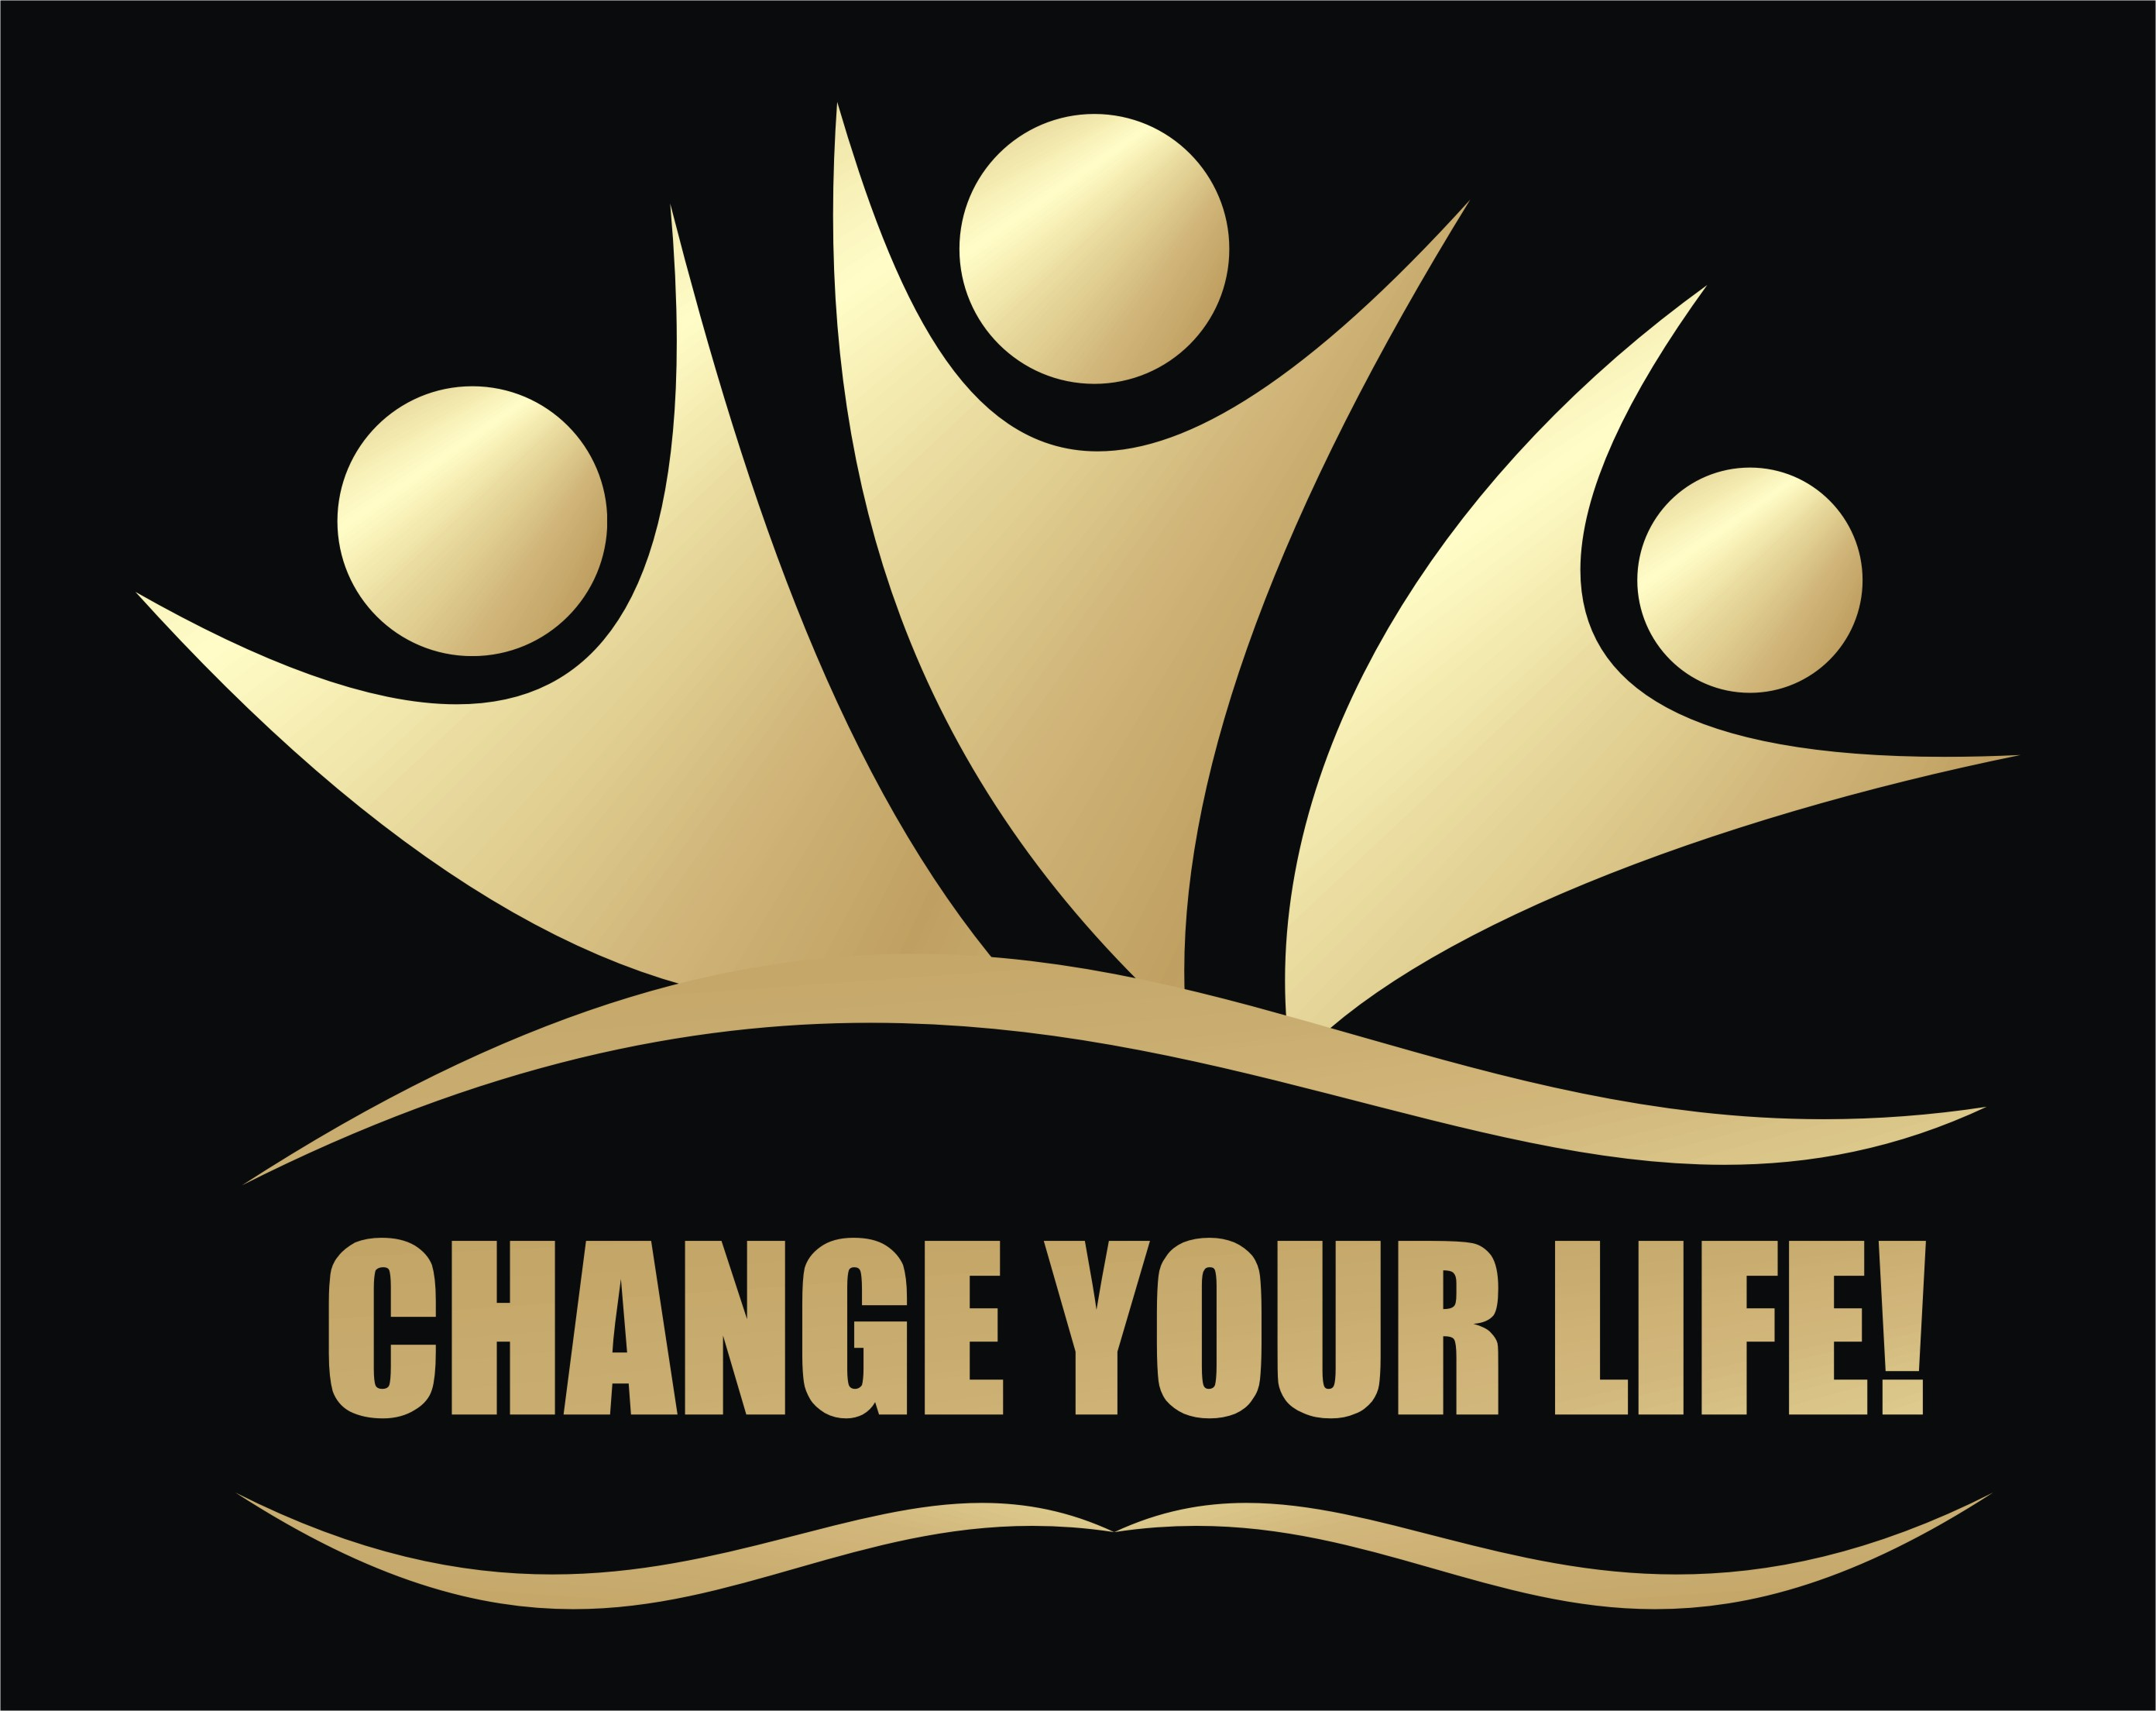 Change Your Life Logo told letters with 3 happy figures reaching up in celebration